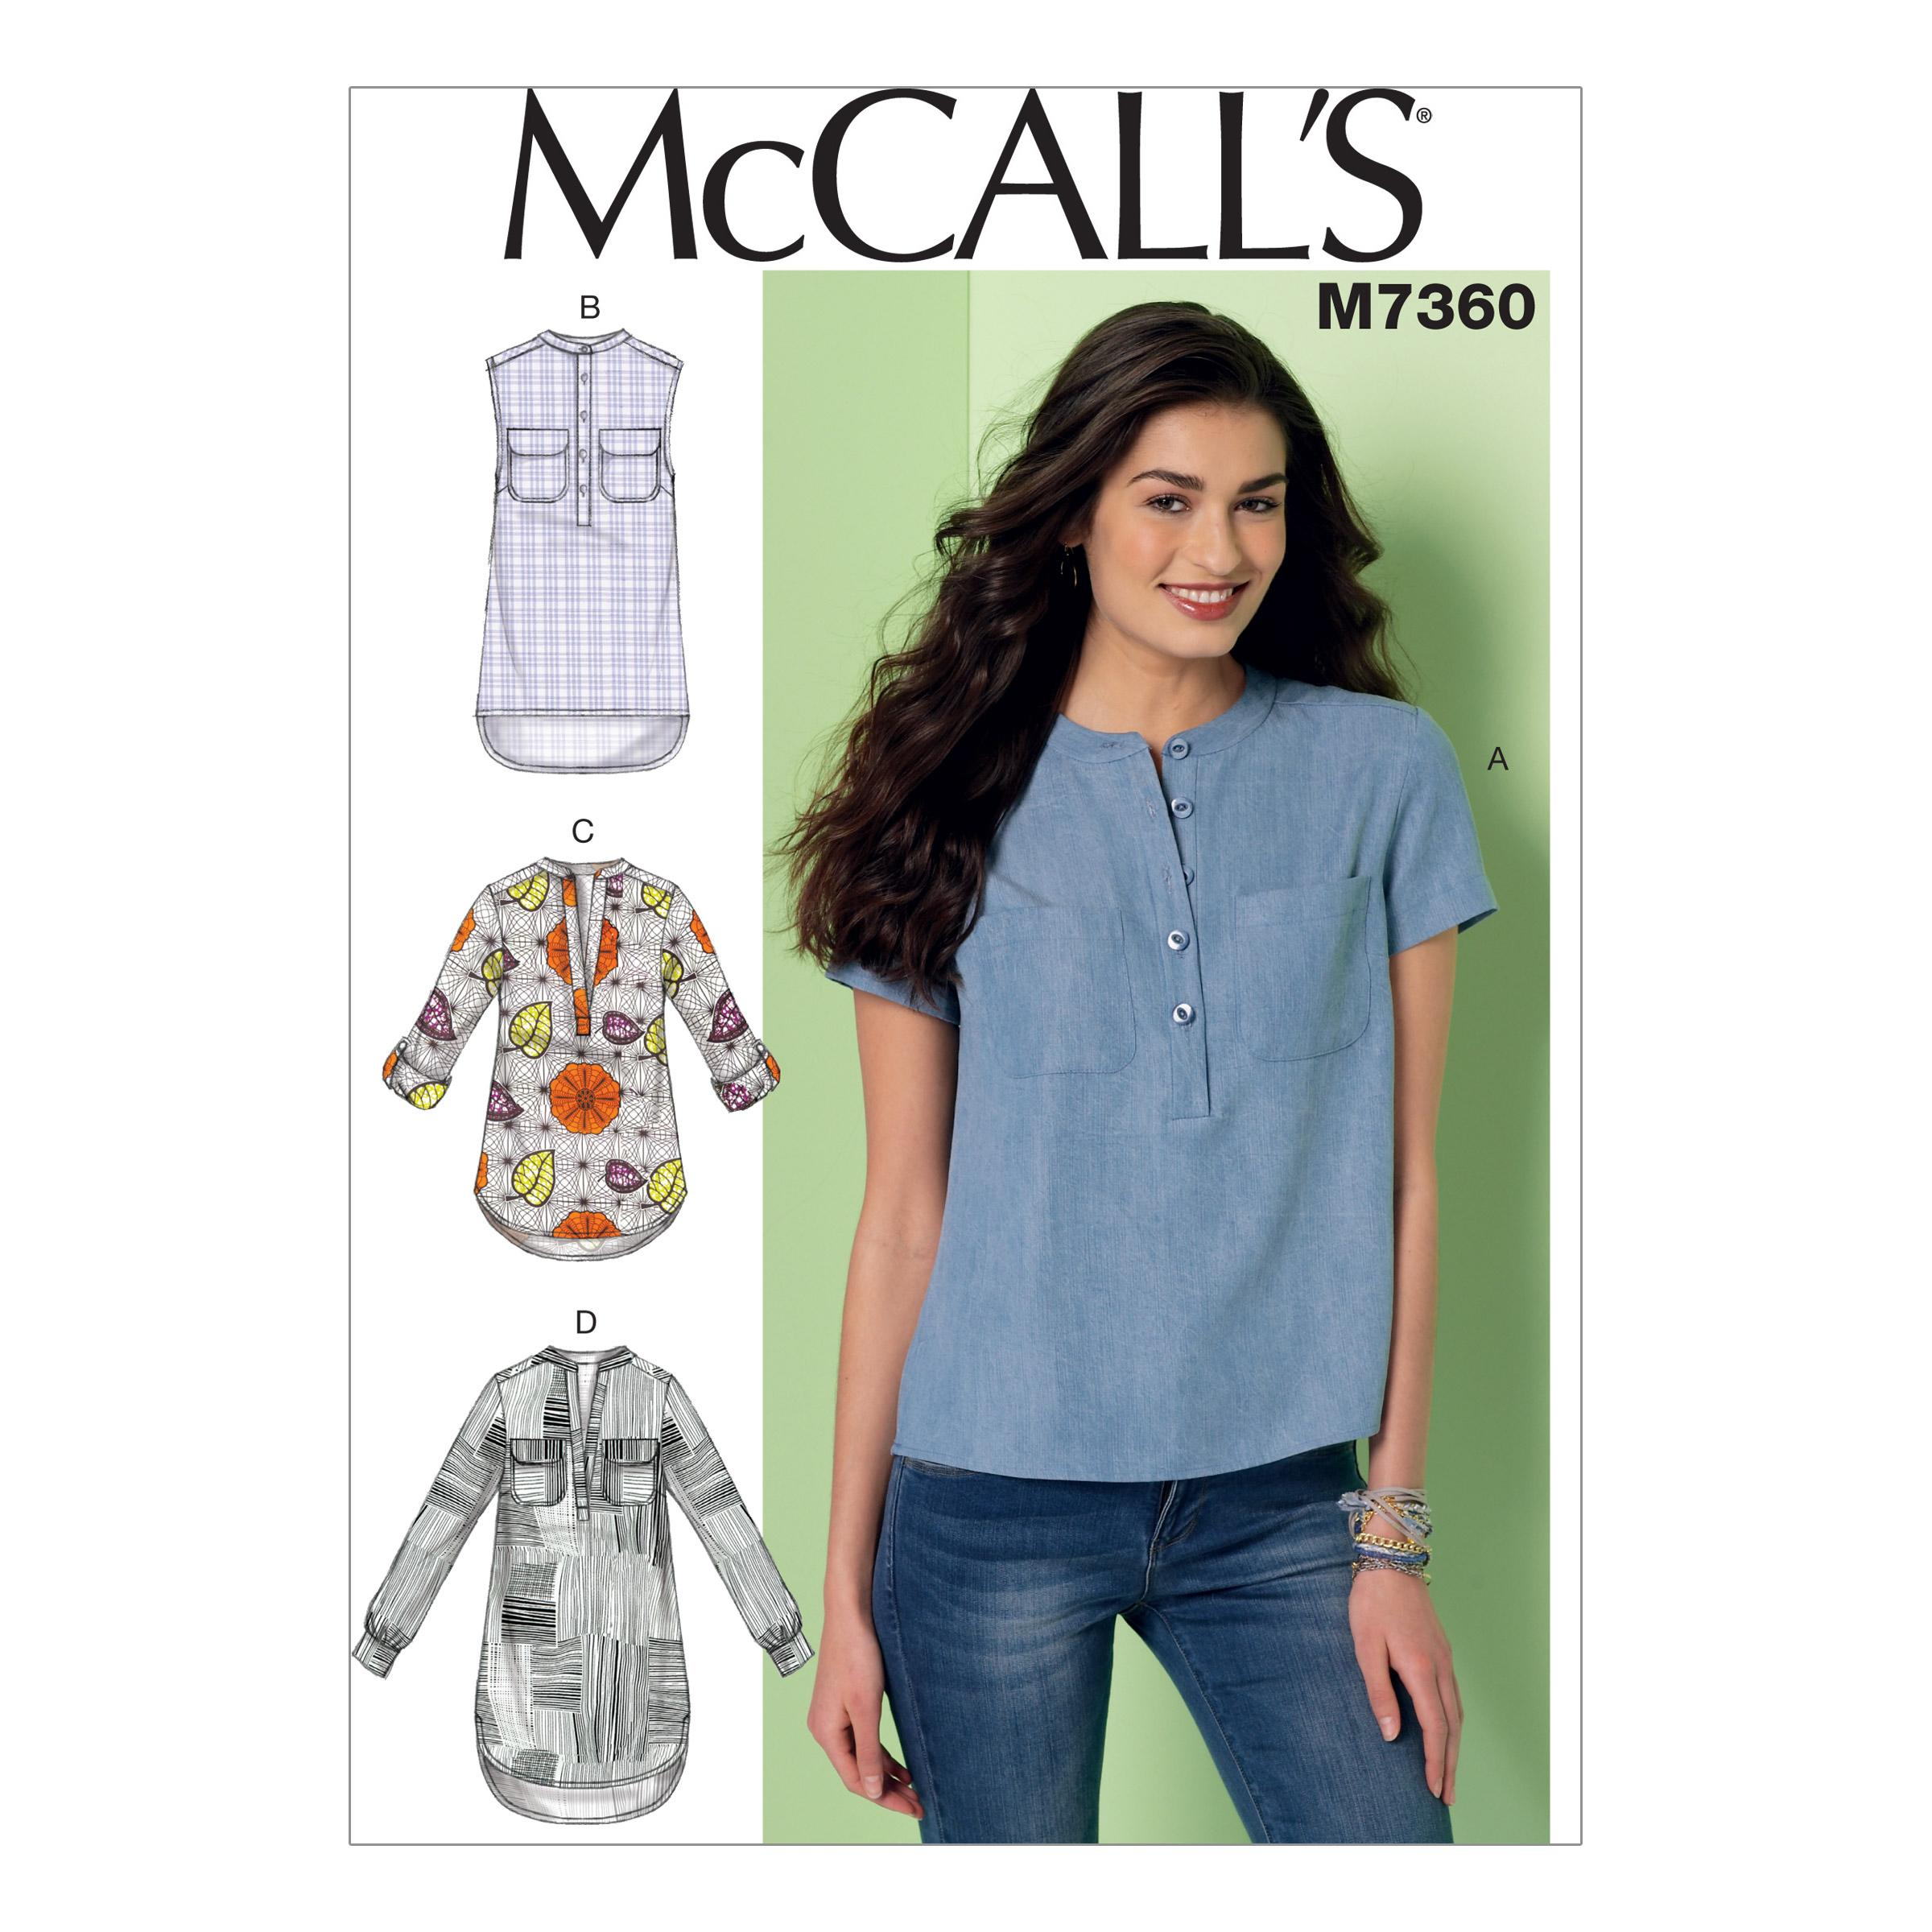 McCalls M7360 Tops/Tunics